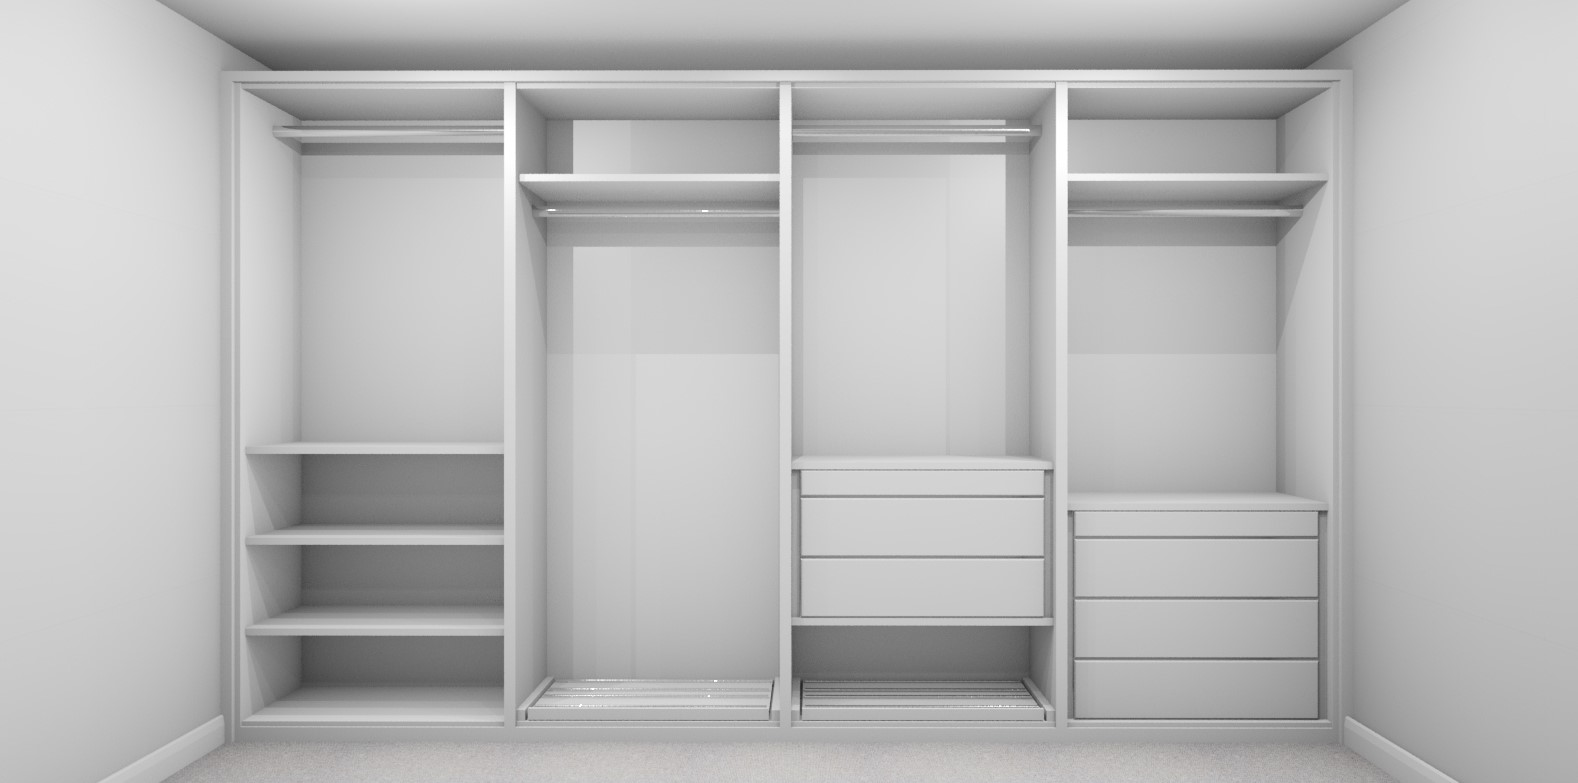 Internal Wardrobe Design Layout 2